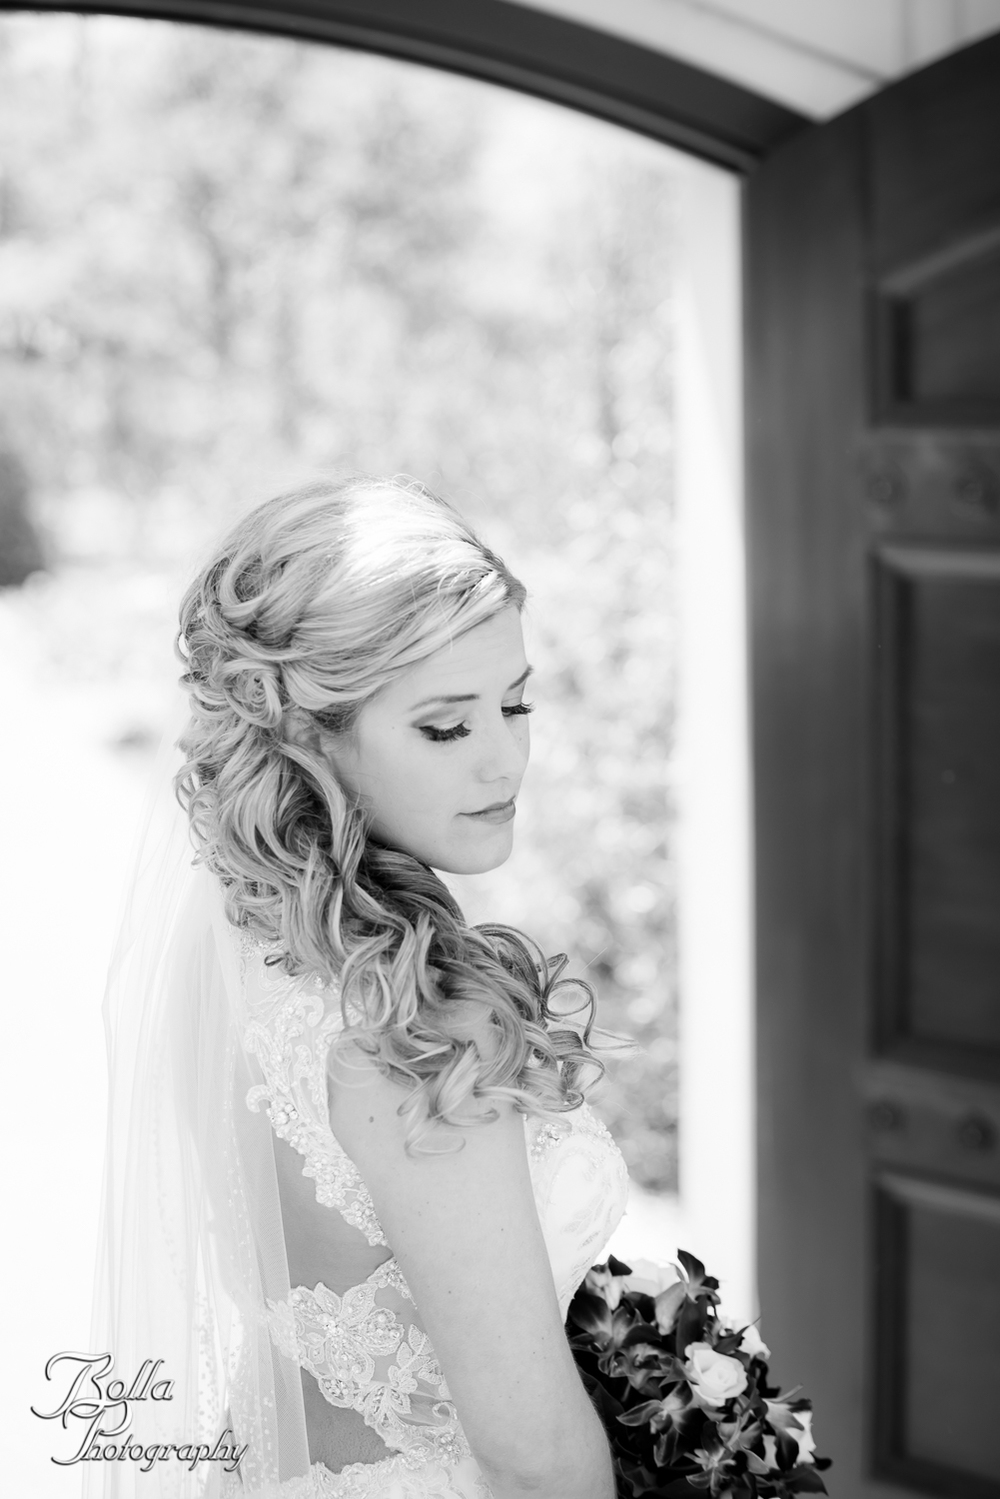 Bolla_Photography_St_Louis_wedding_photographer_Morgando_Blues_hockey_Botanical_Gardens_spring-0091.jpg